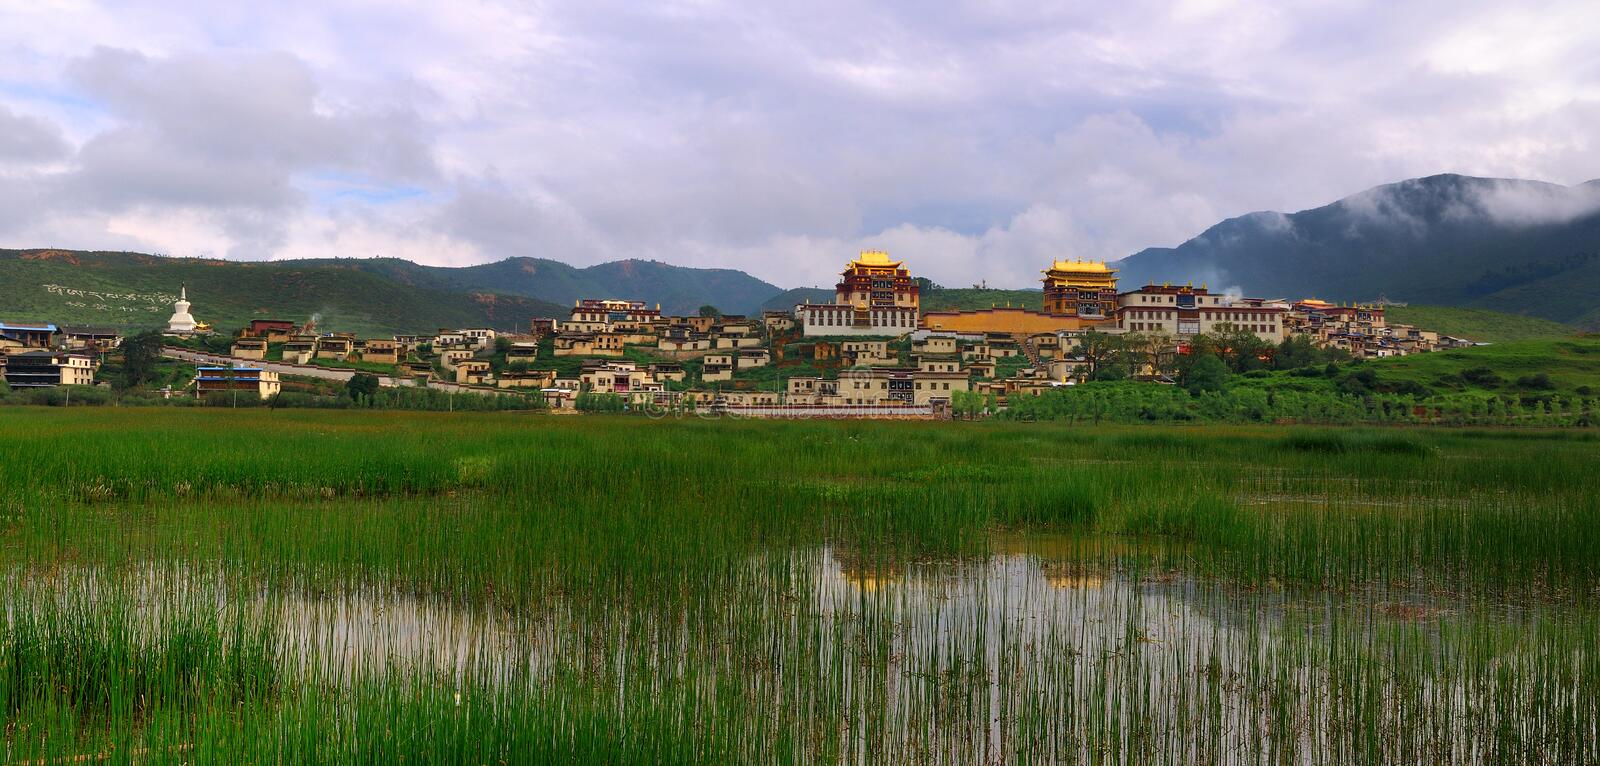 Shangri-La - Songzanlin temple. Tibetan Buddhist Temple, a temple library, located in the Shangri-La in Yunnan Province China stock image